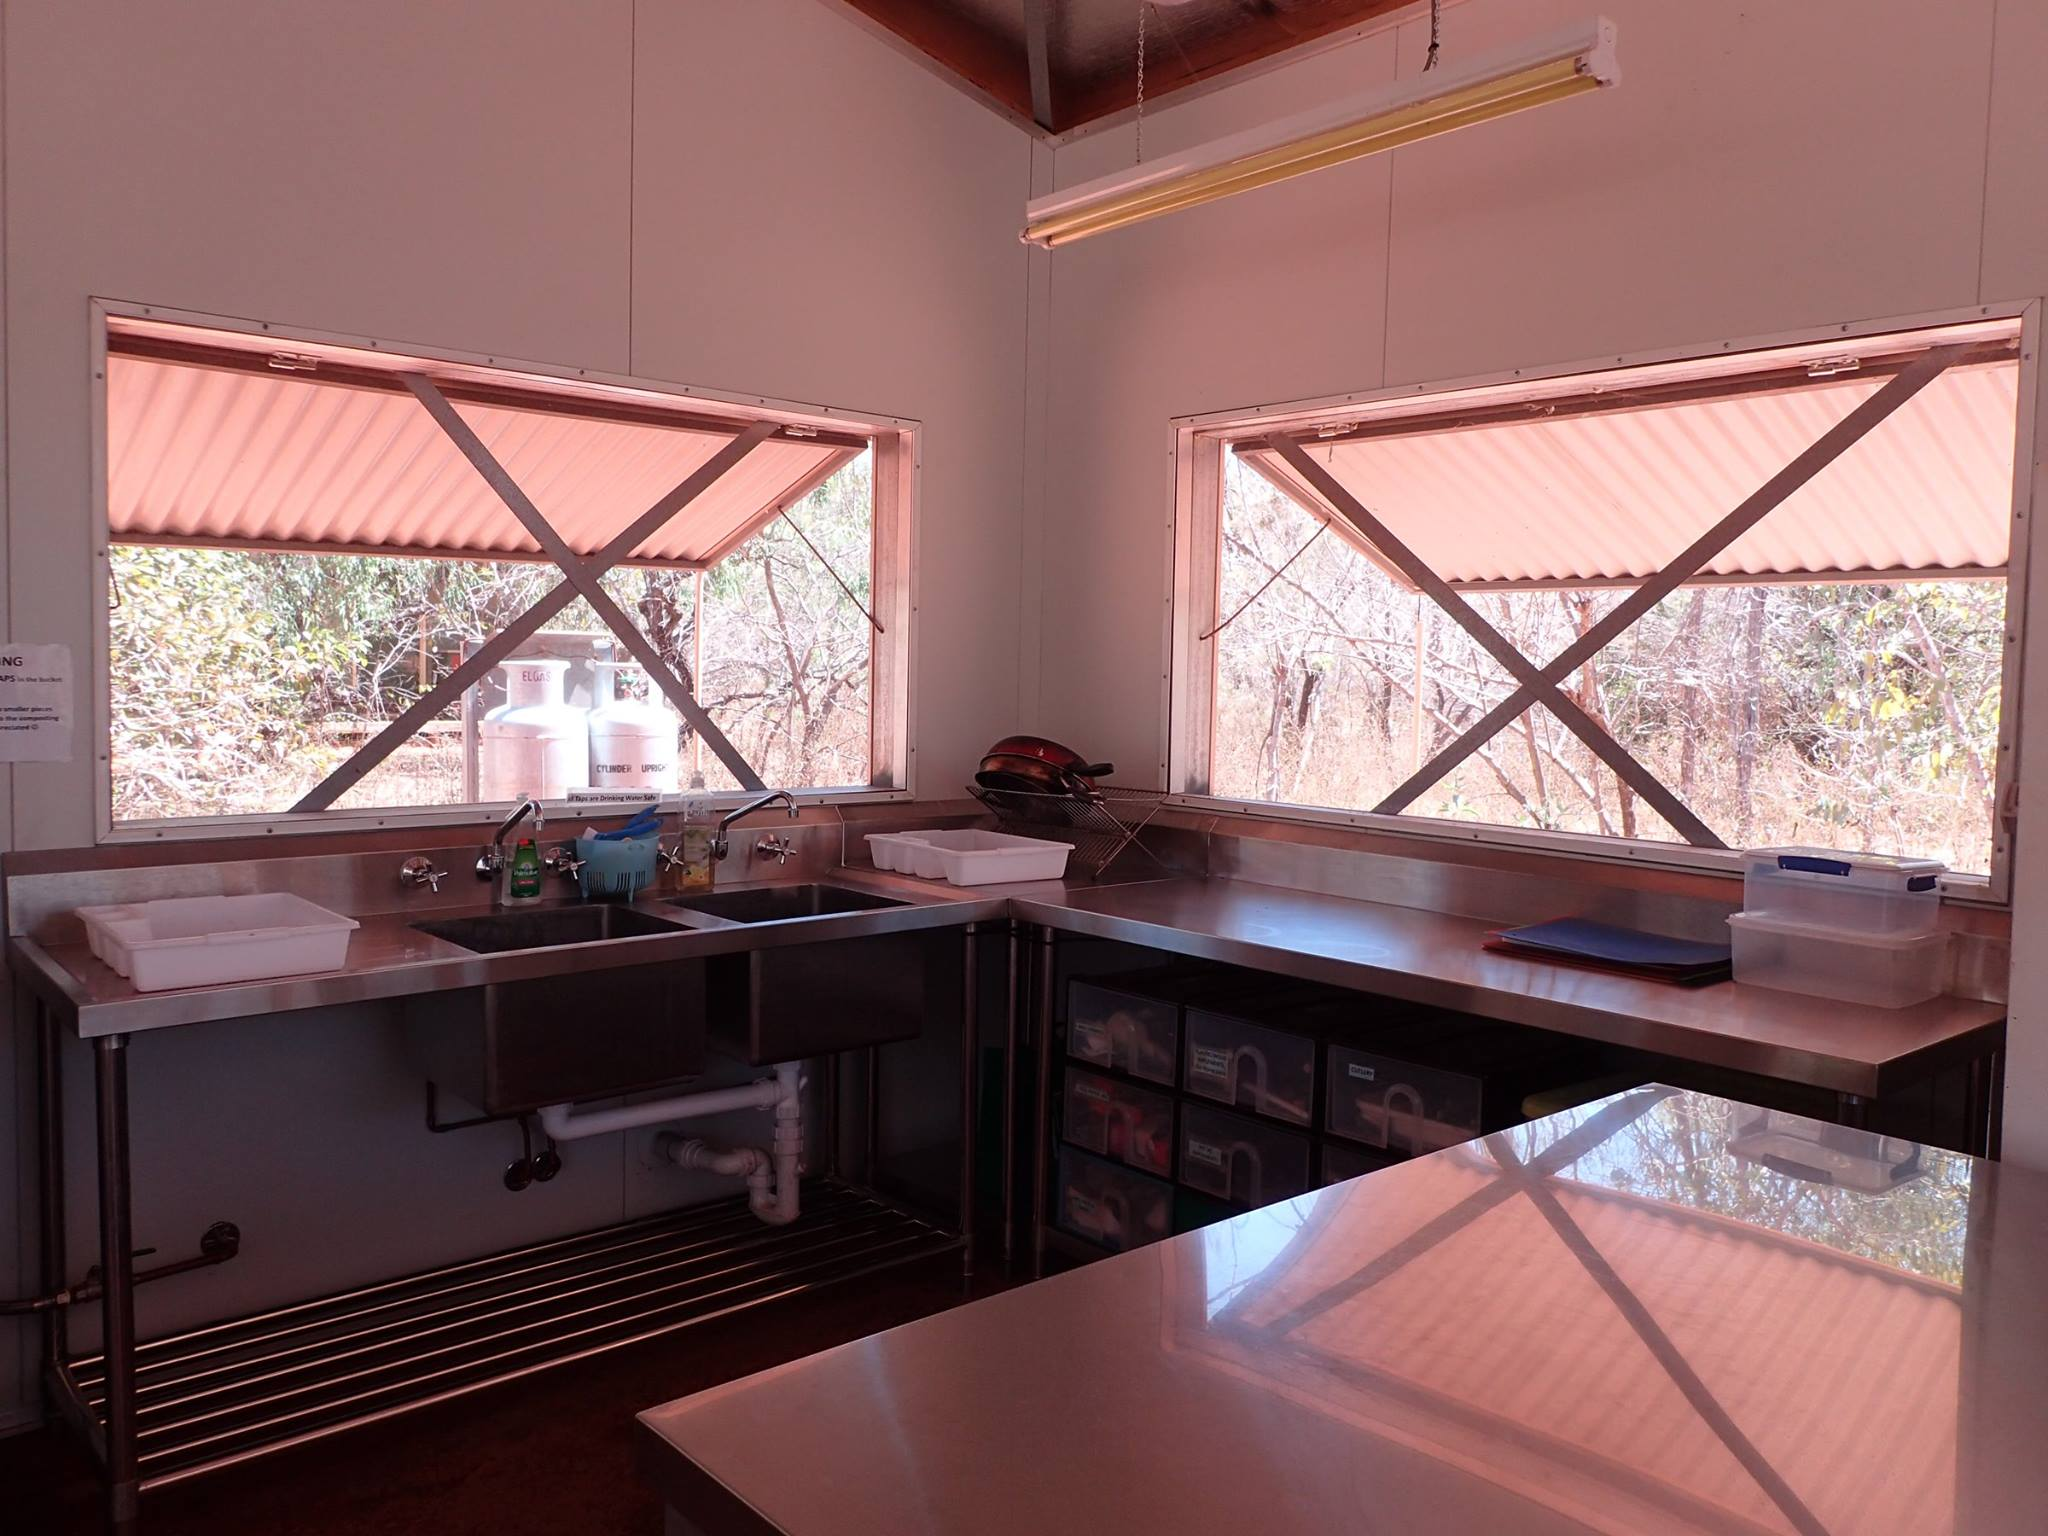 Our lovely new benchtops, sink and cabinets thanks to the Shire of Broome!